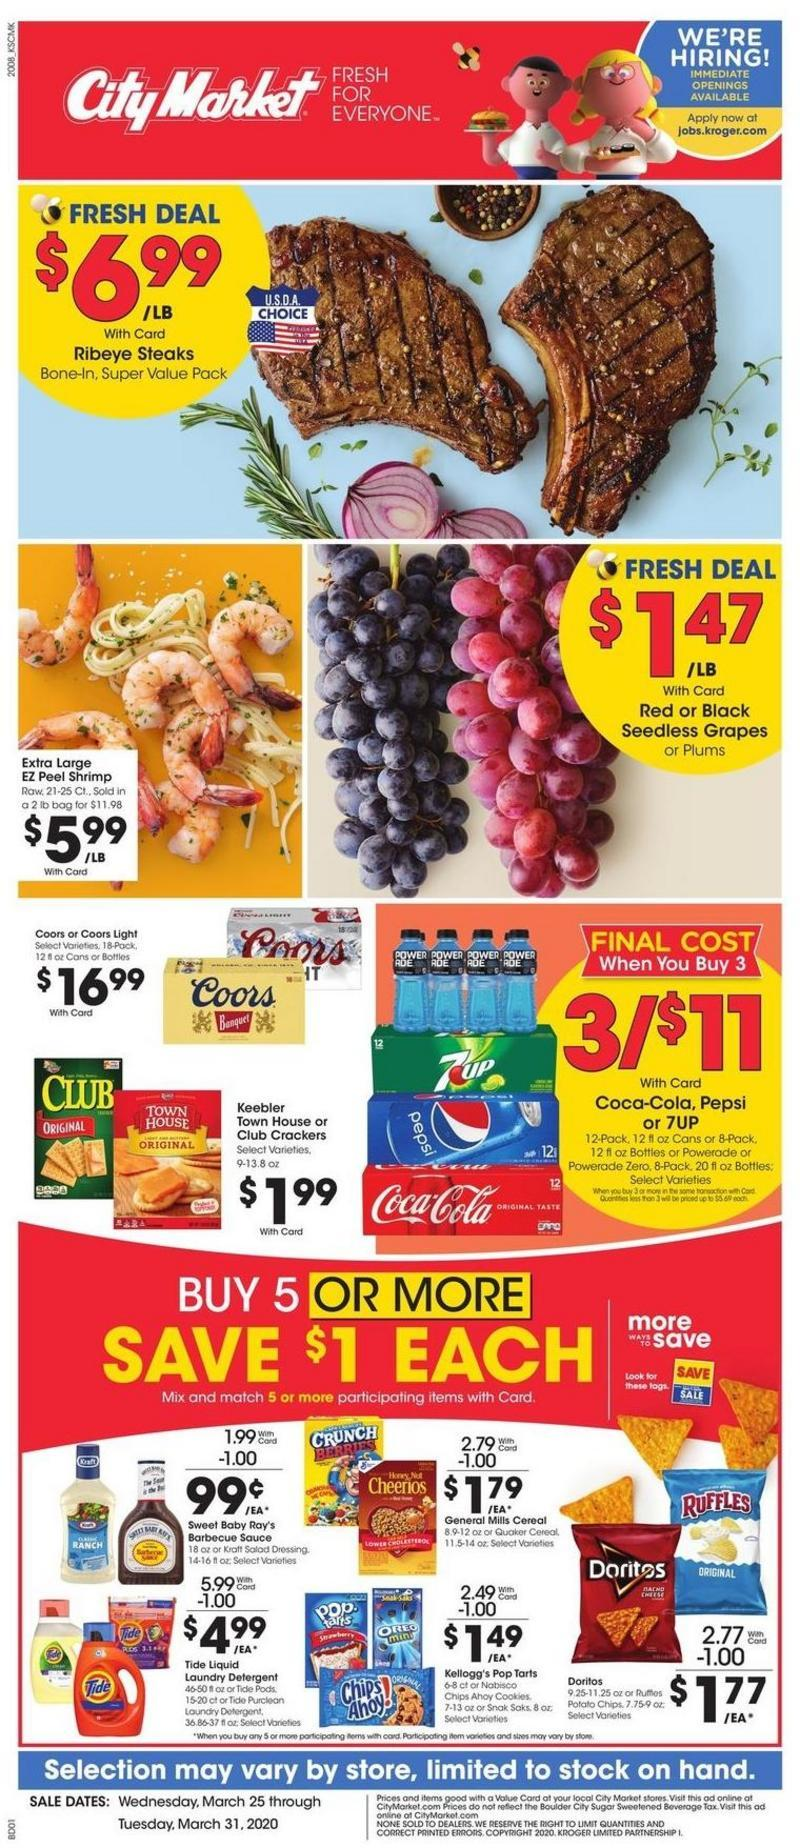 City Market Weekly Ad from March 25